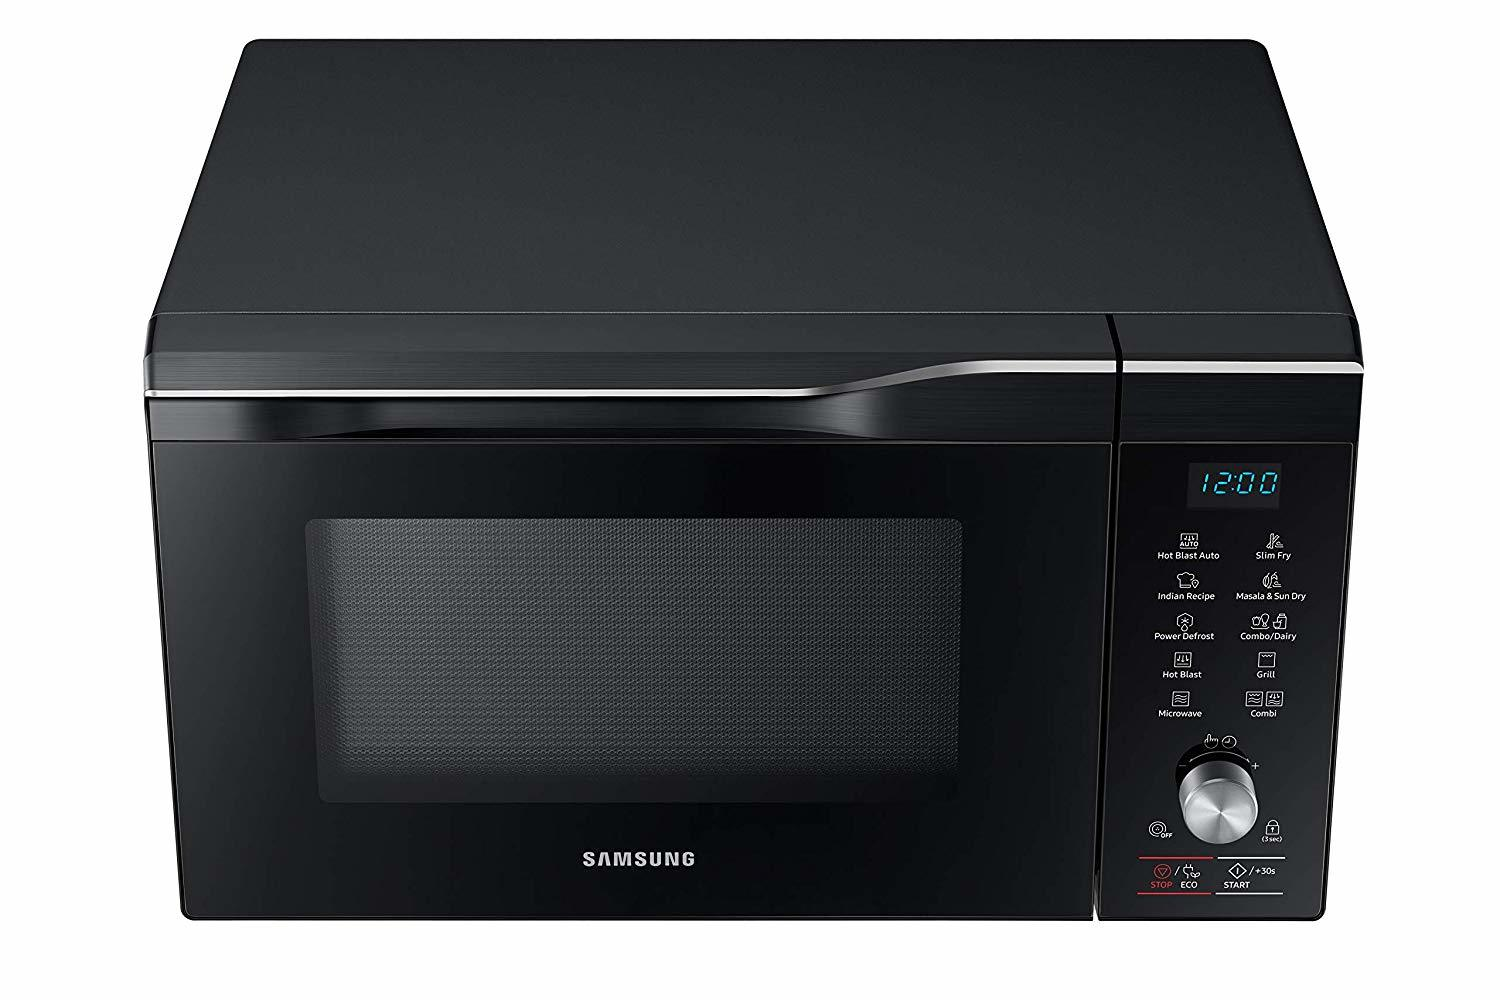 Samsung 32 L Convection Microwave Oven (MC32K7056CK/TL, Black)